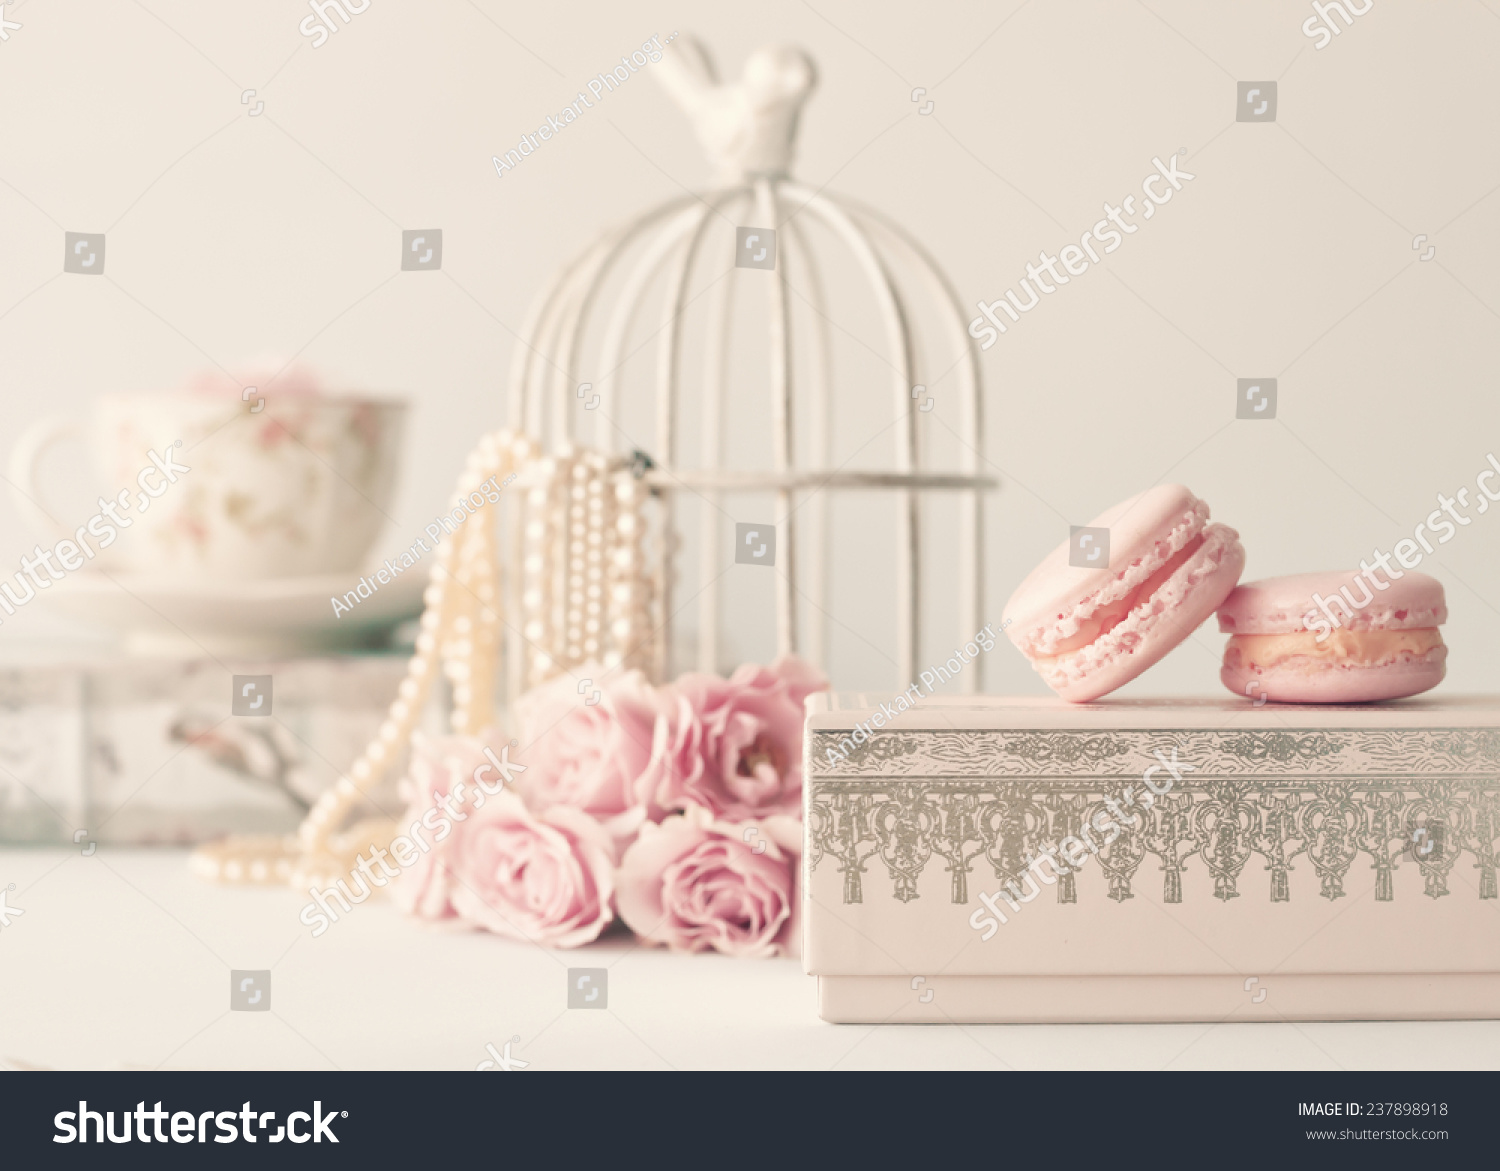 Soft Pastel Vintage Still Life With Macaroons And Roses Stock Photo 237898918  Shutterstock